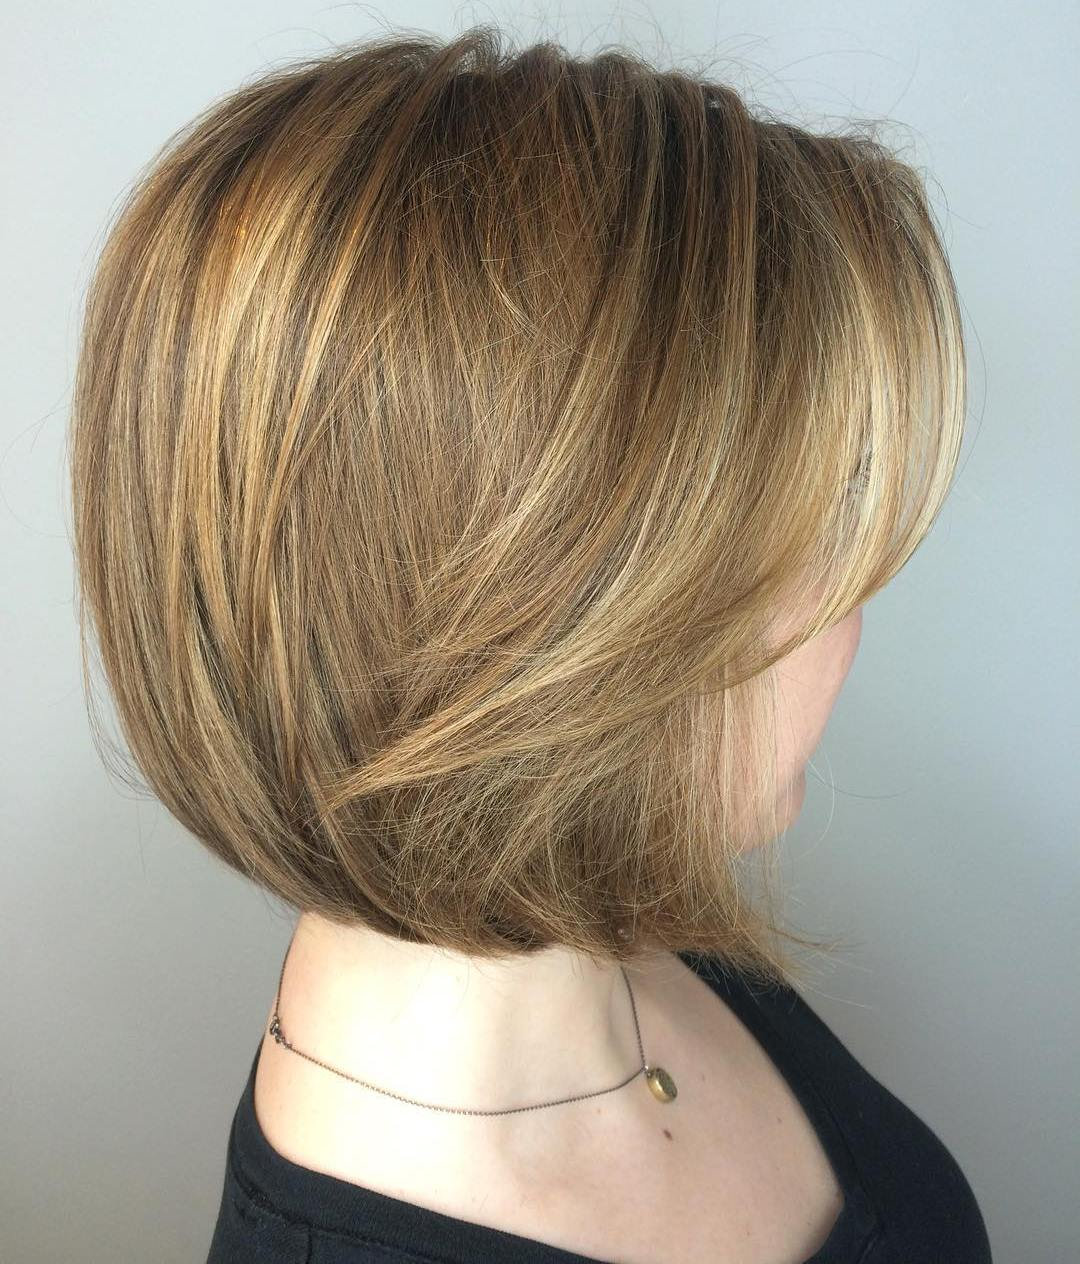 Ten Awesome Things You Can Learn From Bob Style Haircuts Bob Style